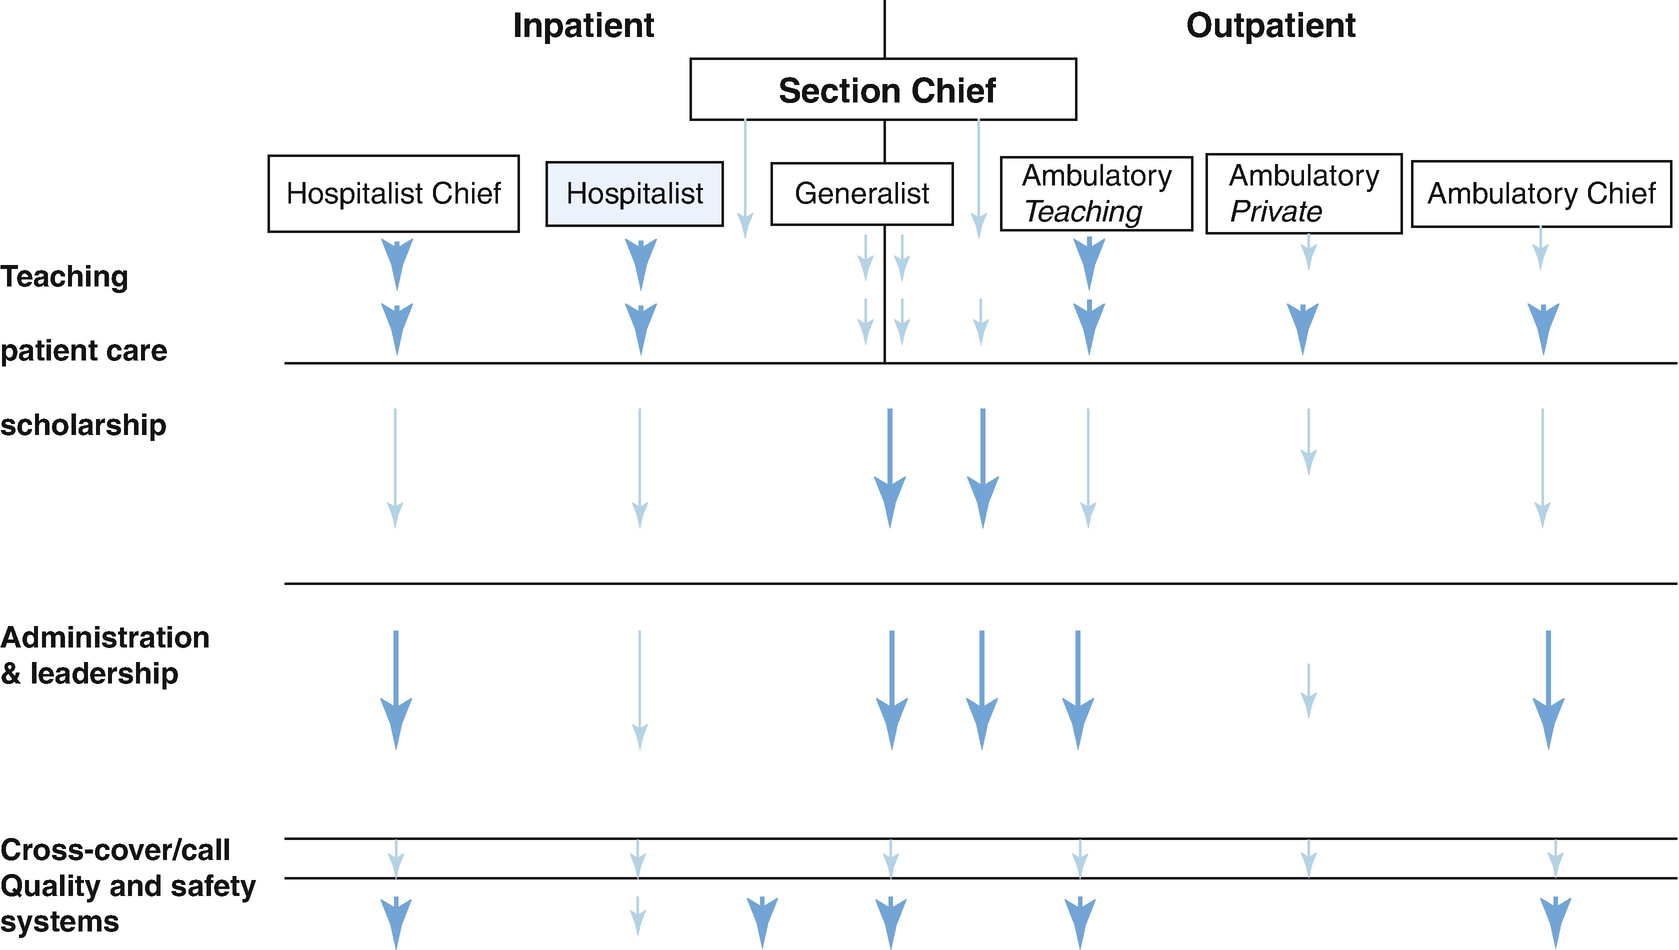 The Role of Hospitalists in a New Hospital: Physician's